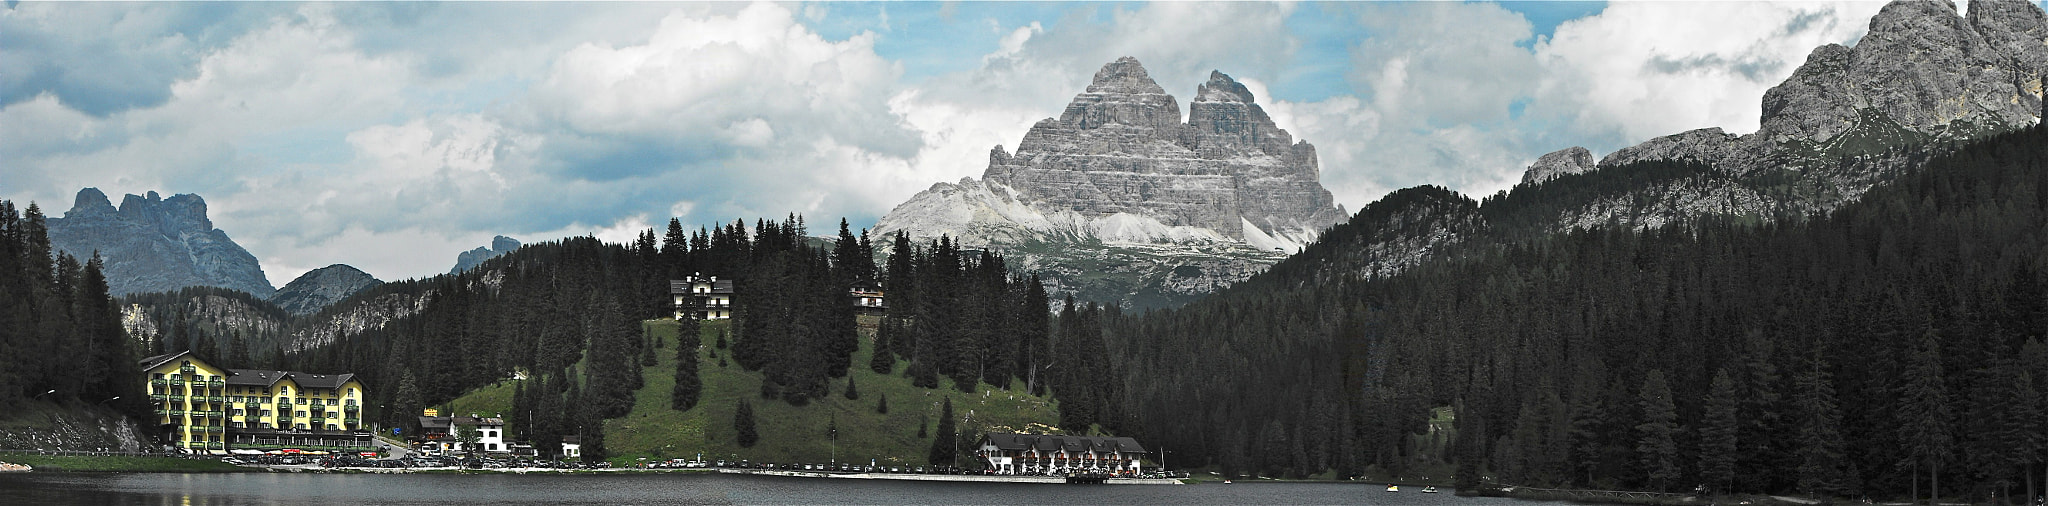 Photograph LAGO DI MISURINA by Tassan Giuseppe on 500px